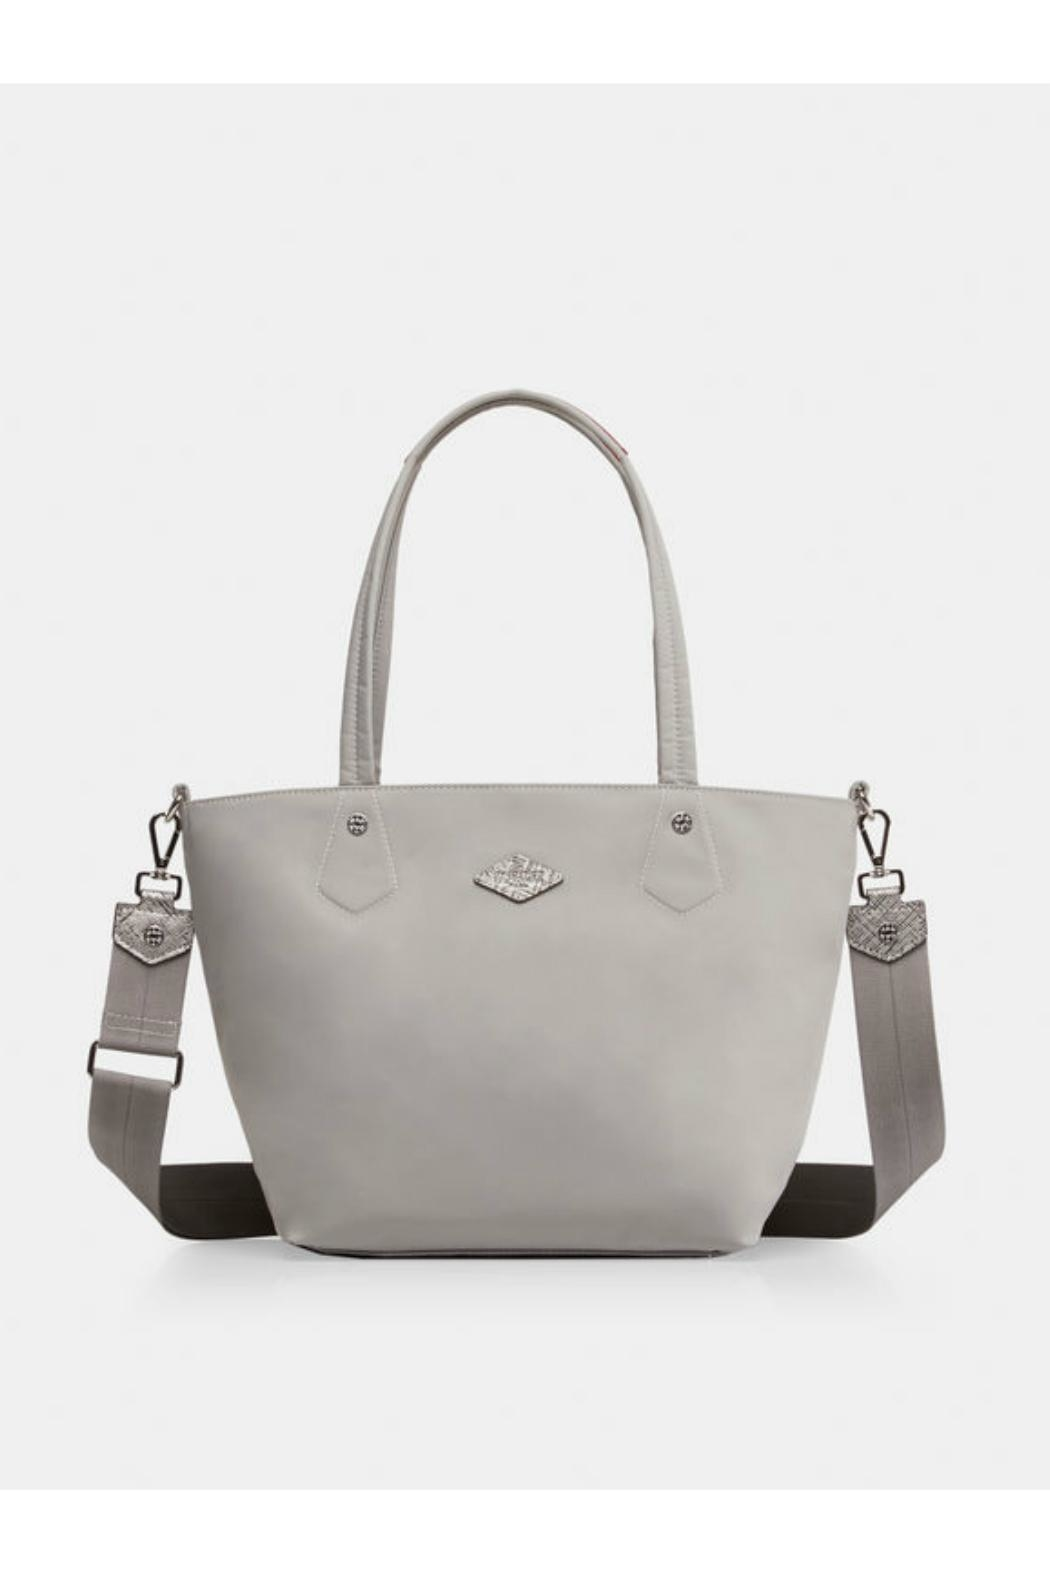 4e9a04e0ef4e MZ Wallace Small Soho Tote from New York City by Protass Gifts ...